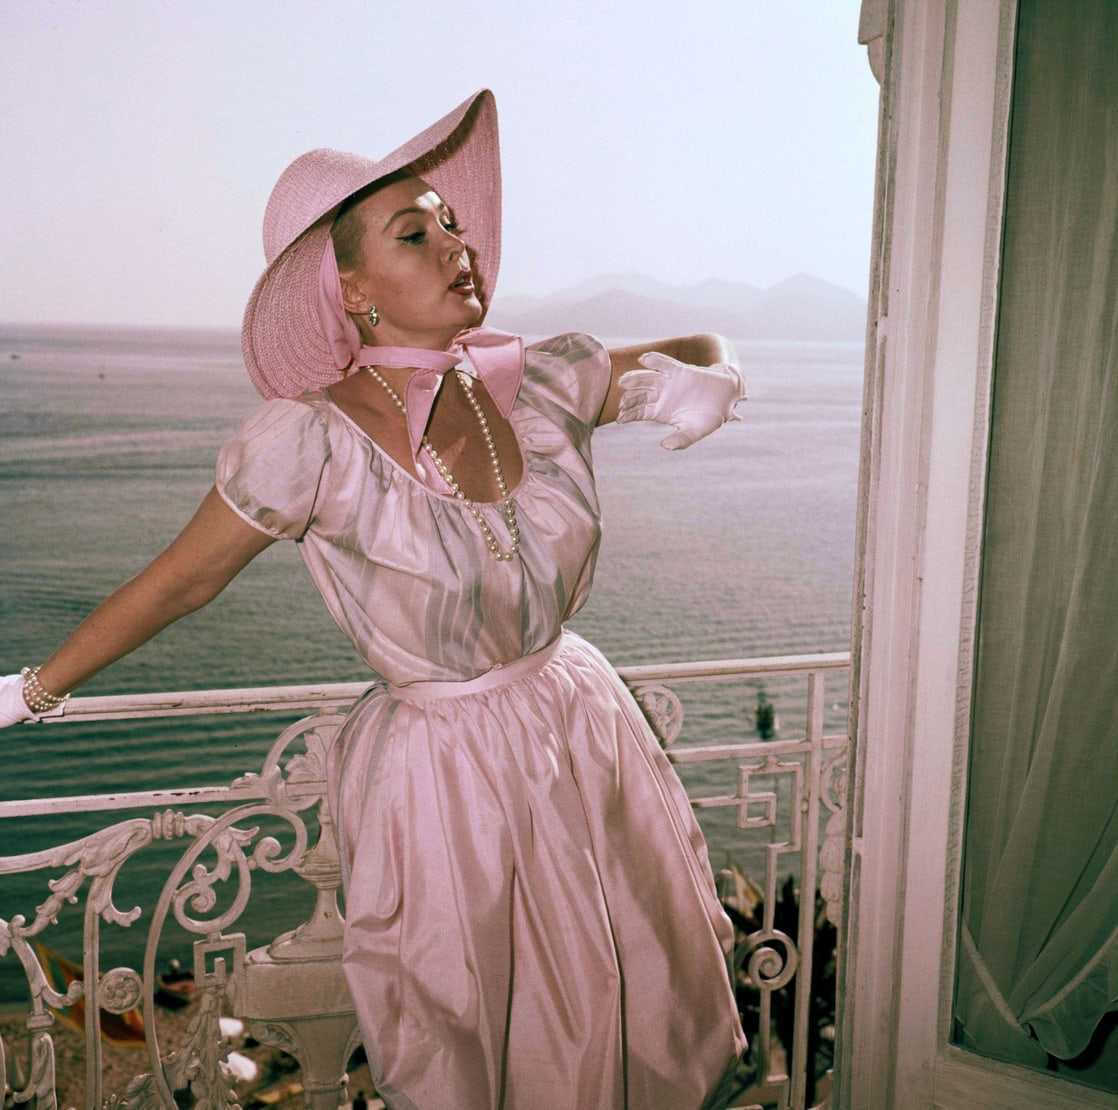 zsa zsa gabor sexy pictures